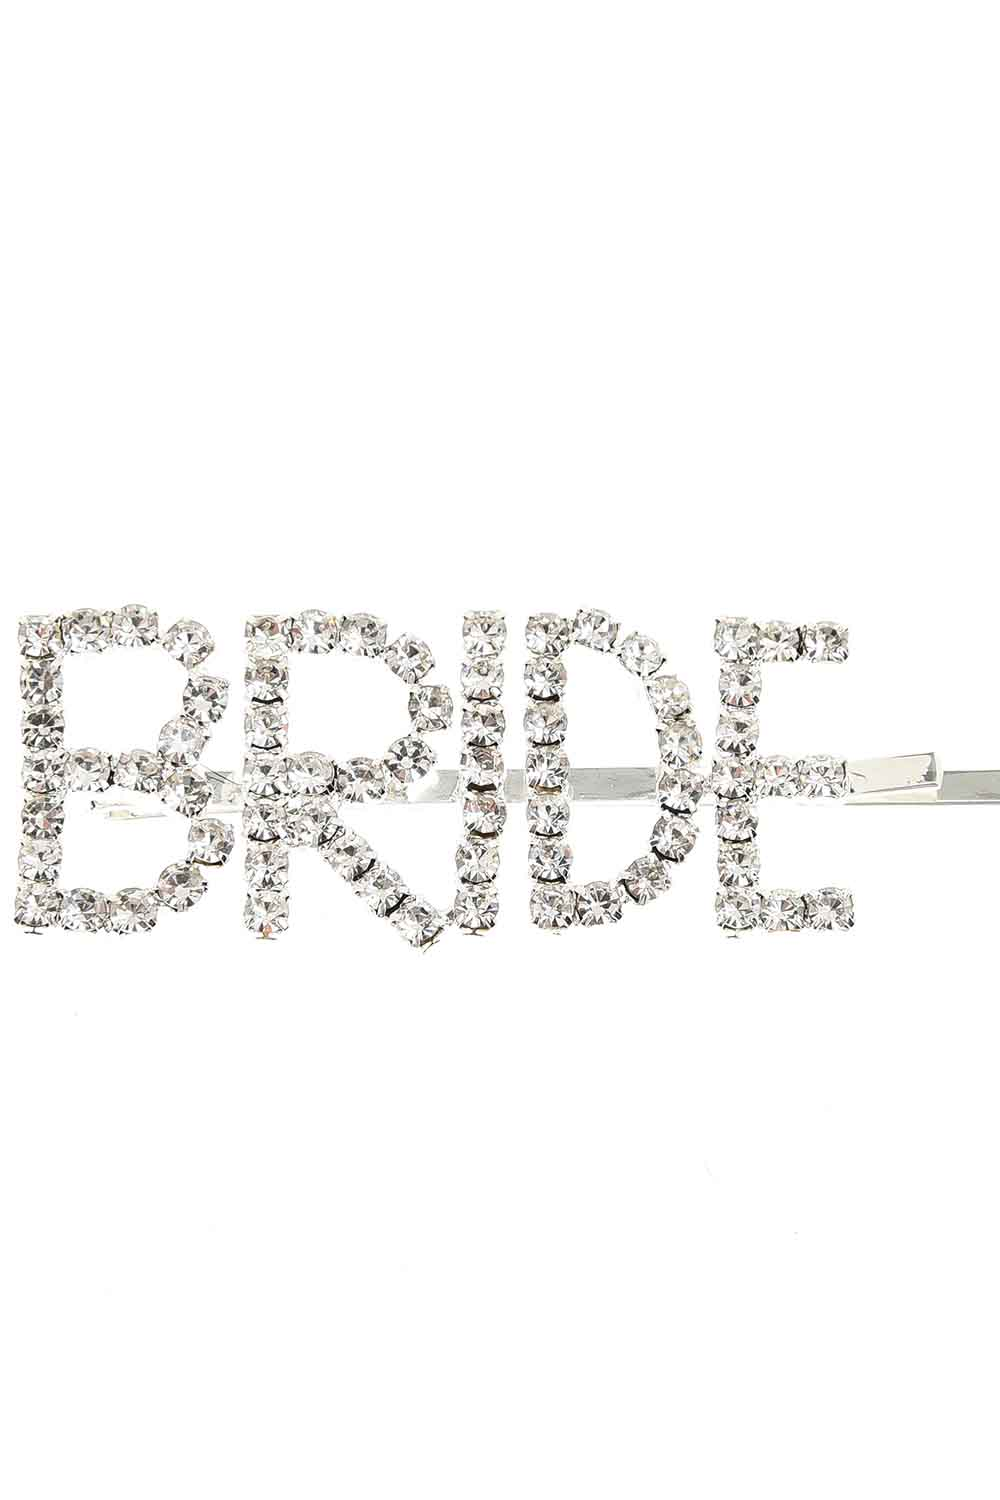 MIZALLE Bride Hair Clips (St) (1)